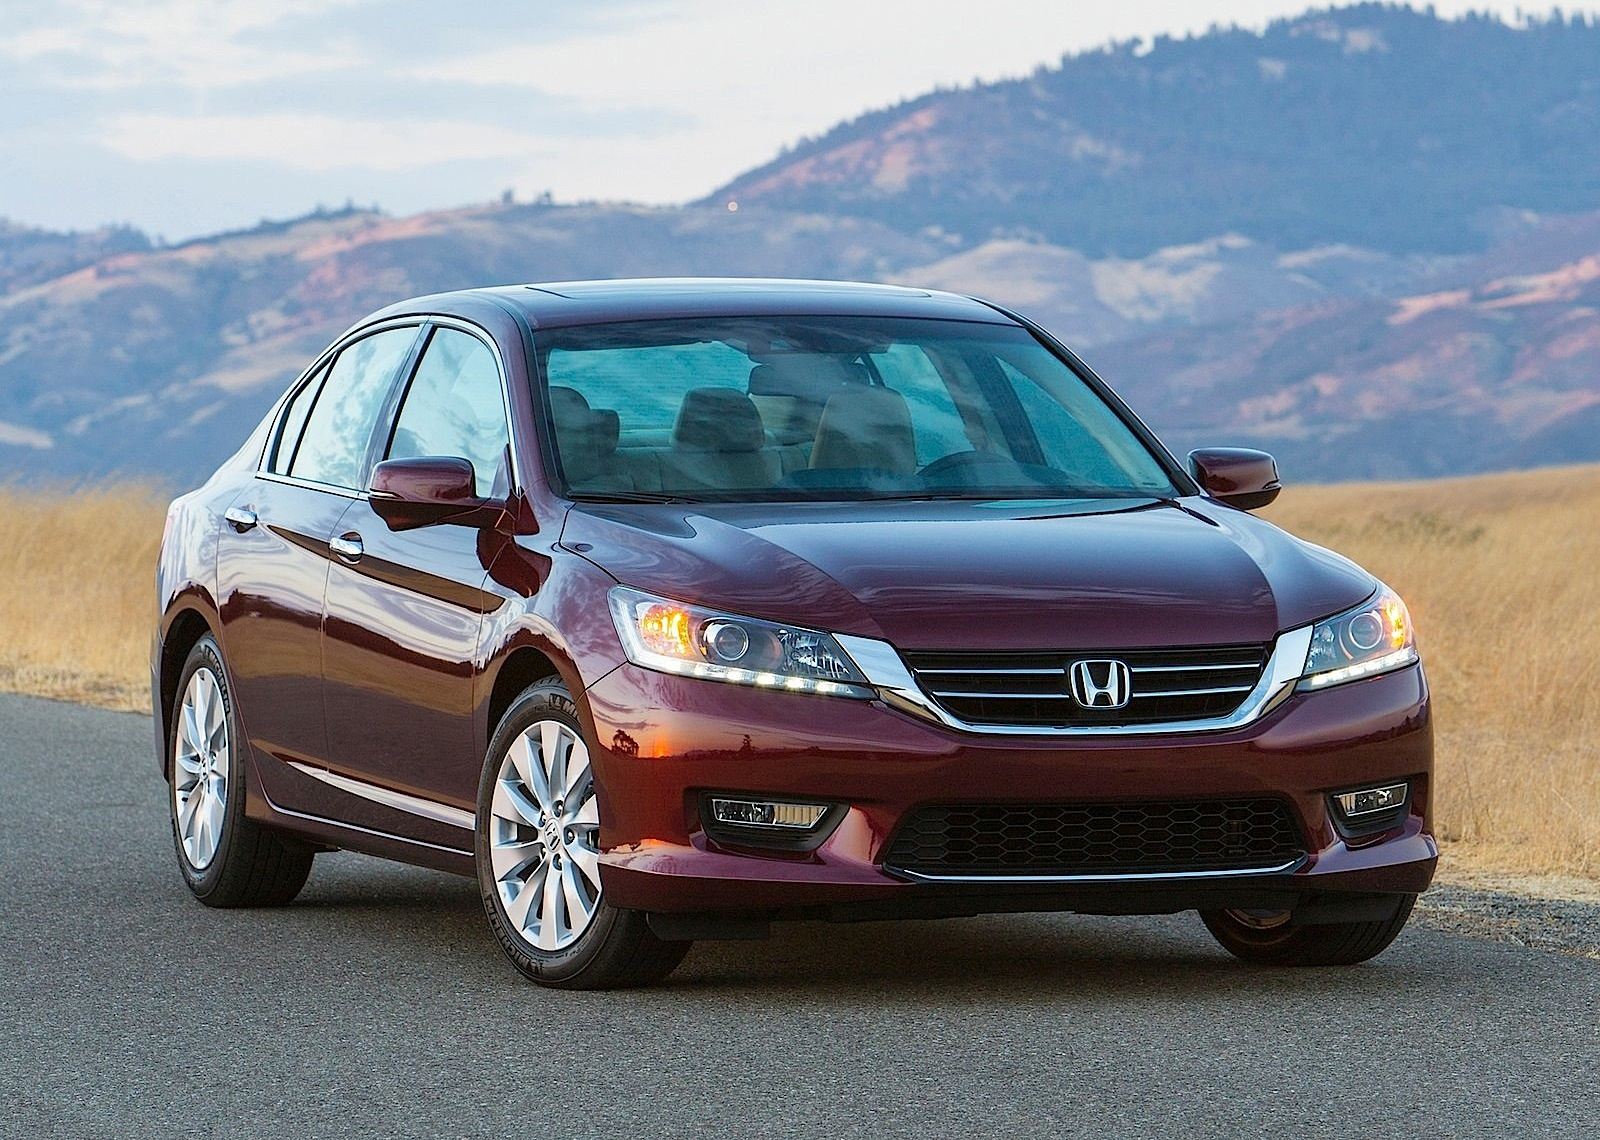 Honda Accord Sport 2013 >> HONDA Accord specs & photos - 2012, 2013, 2014, 2015 - autoevolution